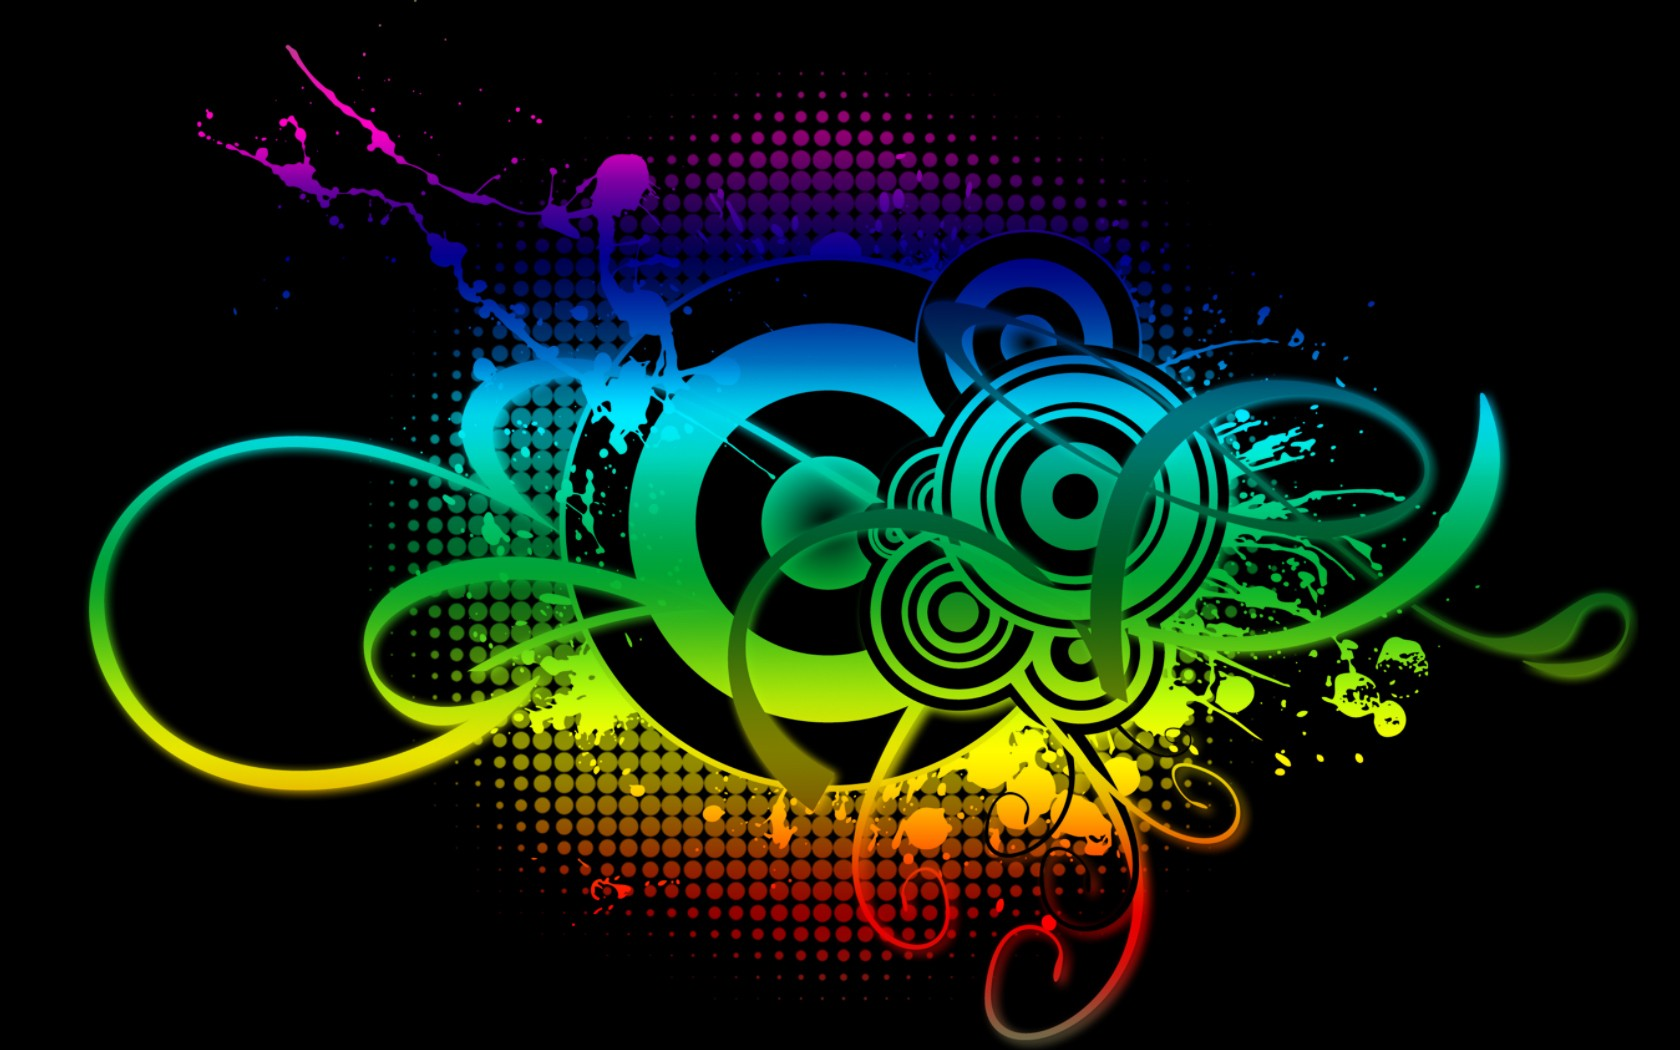 Abstract Art Music Notes Background 1 Hd Wallpapers: Abstract Music DeviantART Wallpaper